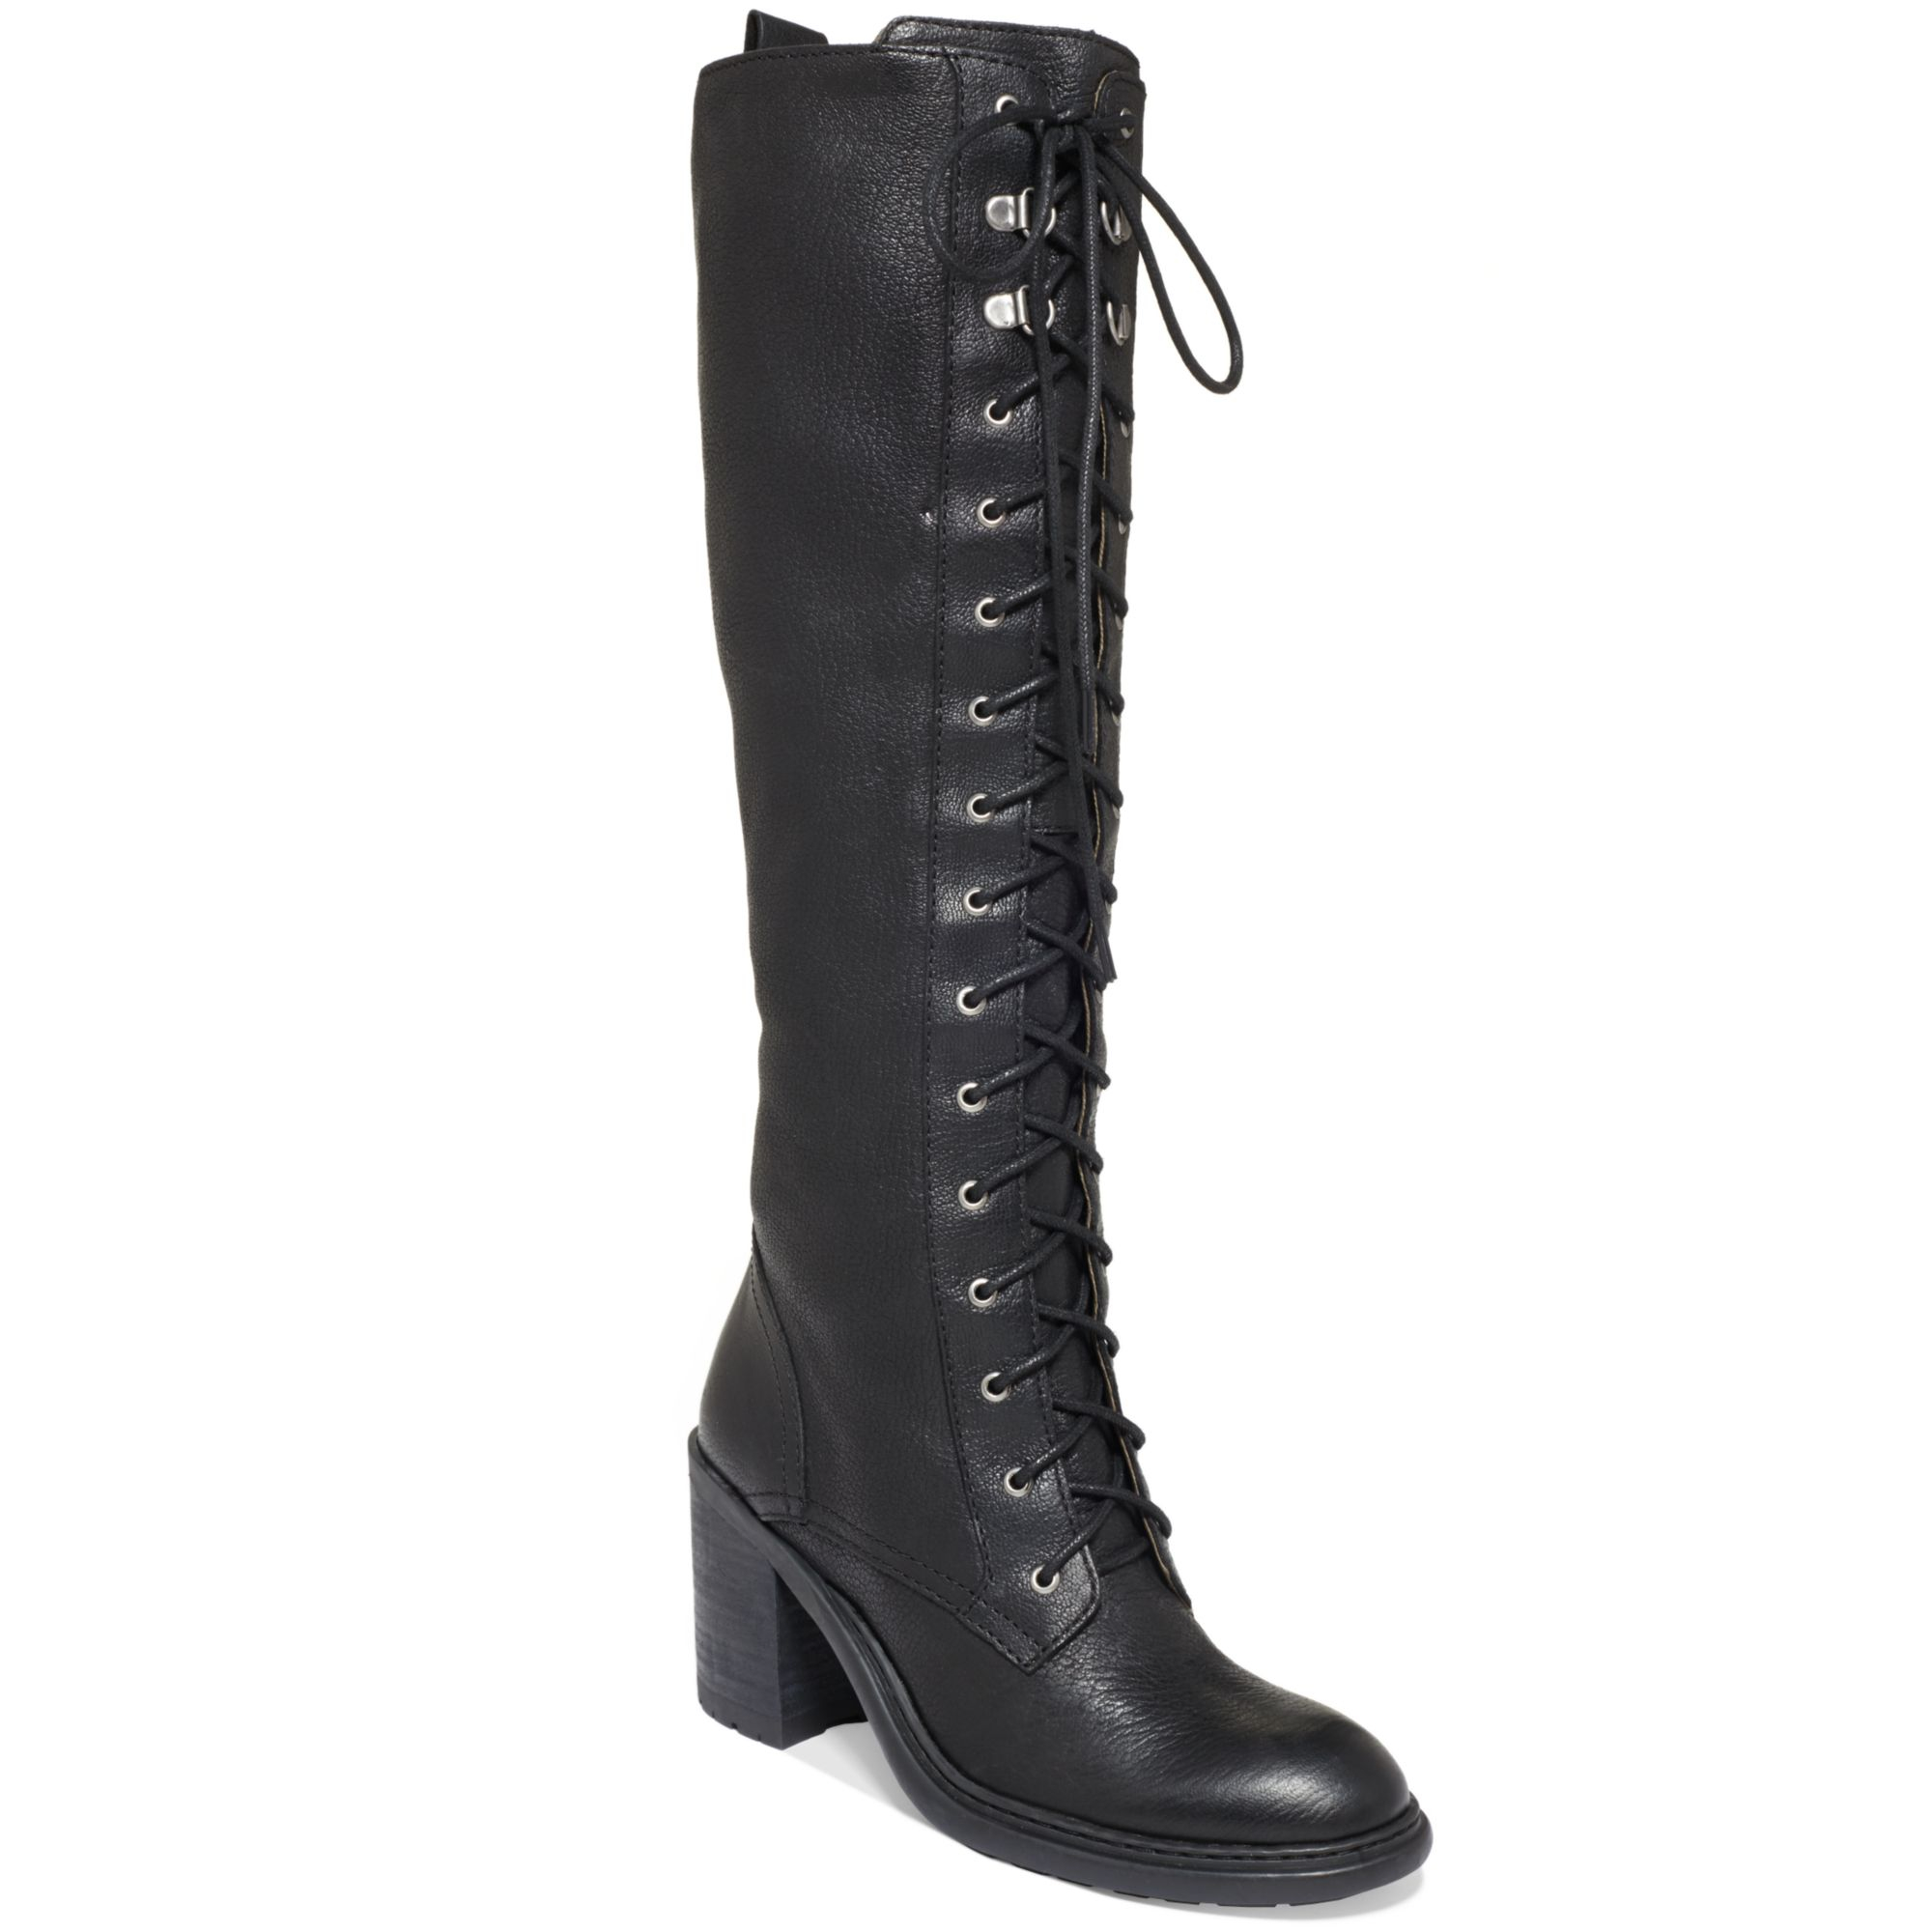 Nine west Lory Tall Laceup Combat Boots in Black | Lyst